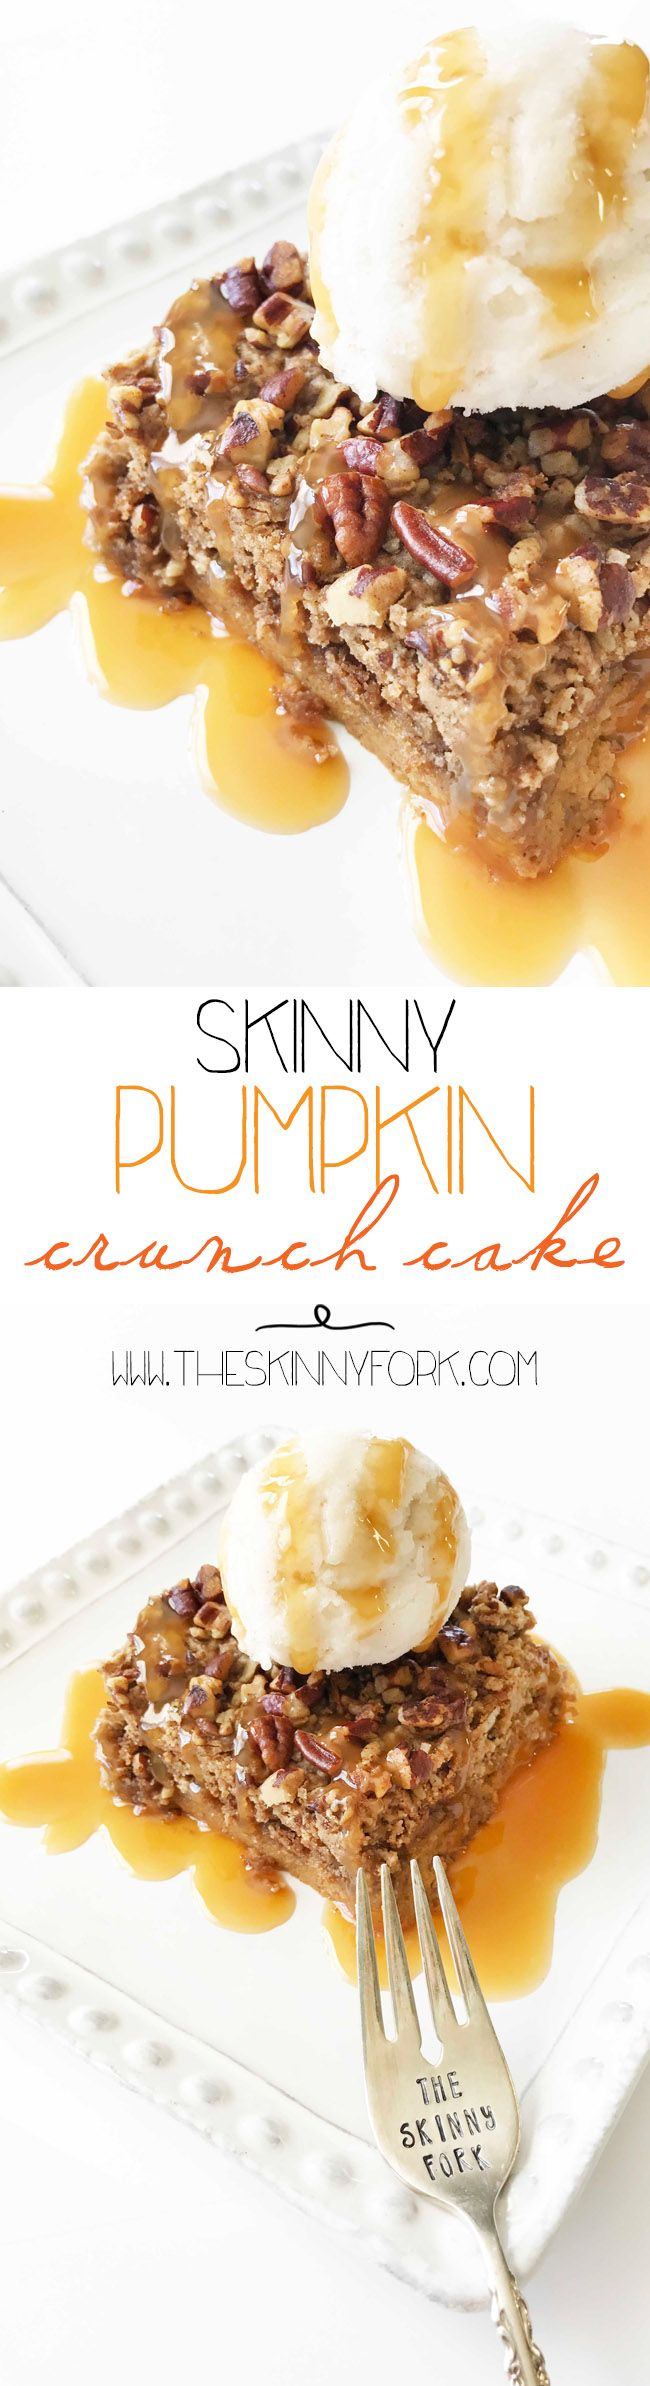 This Skinny Pumpkin Crunch Cake is gonna knock your socks off!